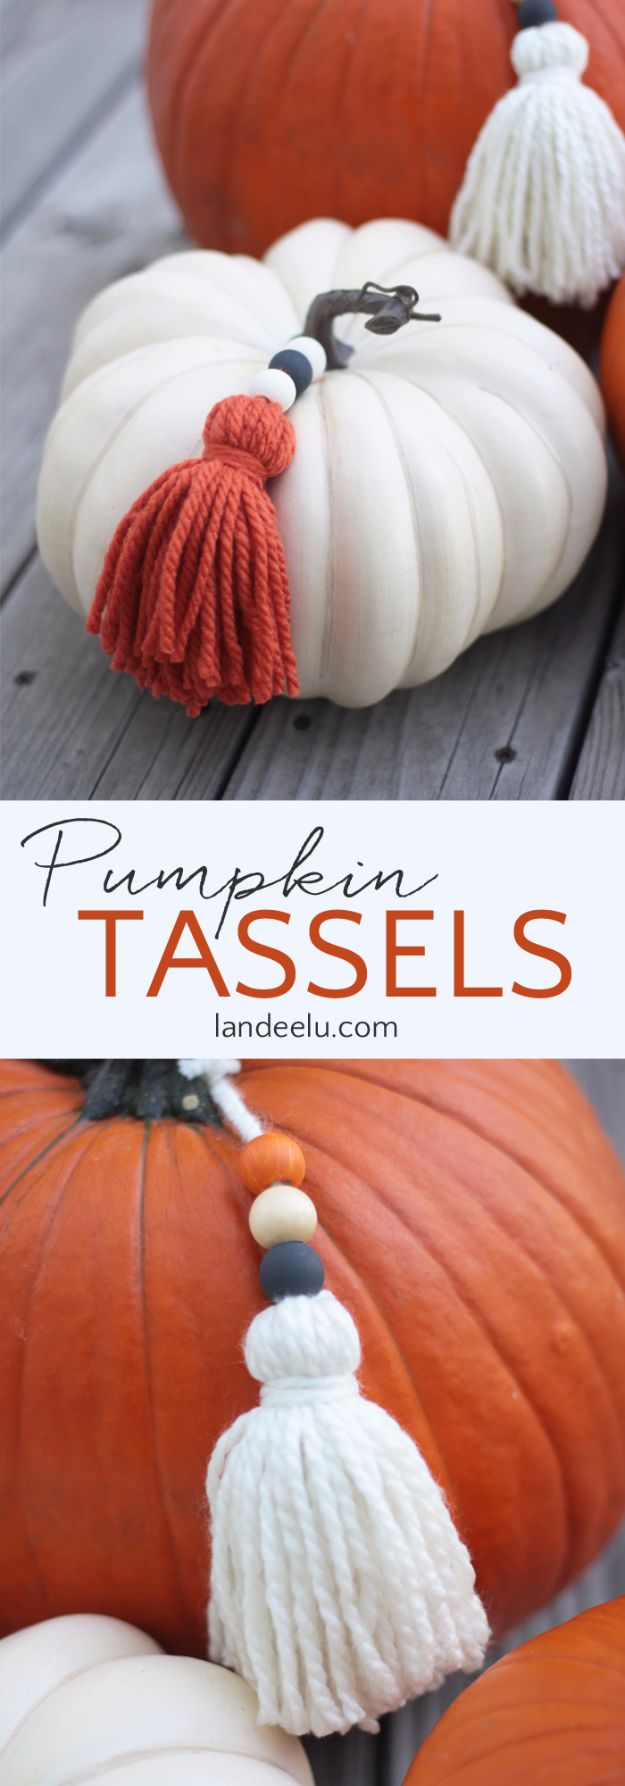 DIY Crafts for Fall Decorating - Pumpkin Yarn Tassels - DIY Autumn Home Decor, Mason Jar Fall Crafts, Dollar Store Crafts, Rustic Pumpkin Ideas, Wreaths, Candles and Wall Art, Centerpieces, Craft Projects with Leaves, Flowers and Burlap Country Crafts